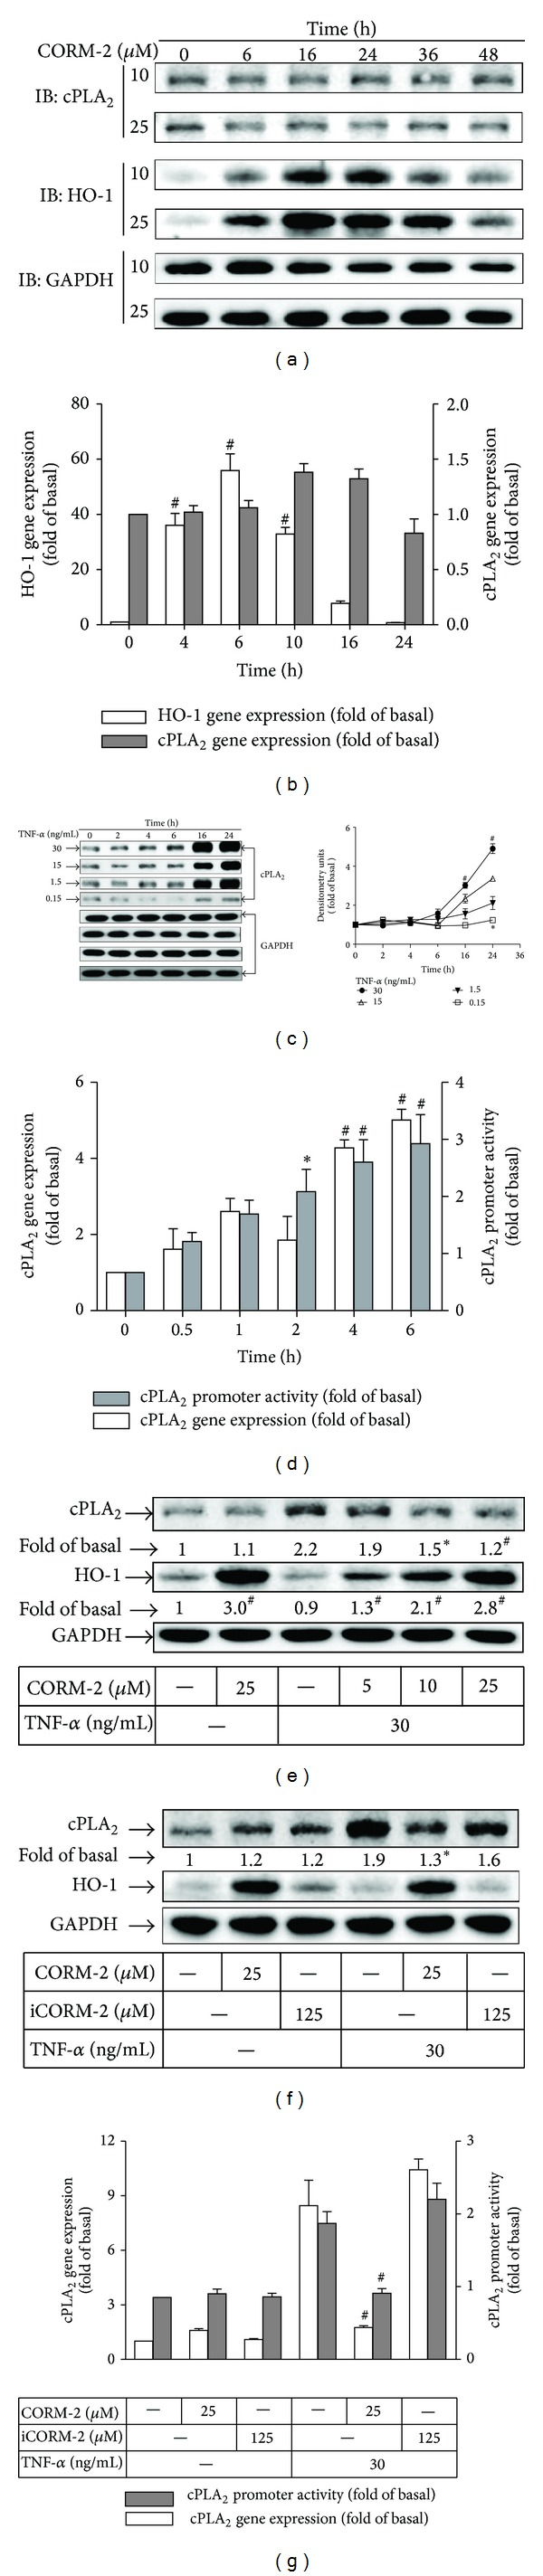 CORM-2 enhances HO-1 expression and modulates TNF- α -induced cPLA 2 expression in RASFs. RASFs were treated with (a) different concentrations or (b) 25 μ M of CORM-2 for the indicated time intervals. (c) RASFs were incubated with various concentrations of TNF- α for the indicated time intervals. (d) Cells were incubated with TNF- α (30 ng/mL) for the indicated time intervals. The mRNA levels of cPLA 2 and cPLA 2 -Luc promoter were measured. (e) Cells were pretreated with different concentrations of CORM-2 for 16 h and then incubated with TNF- α for 16 h. Cells were pretreated with (f) CORM-2 or iCORM-2 or (h) were transfected with scrambled (scrb) or HO-1 siRNA and then incubated without or with TNF- α for 16 h. ((a), (c), (e), (f), and (h)) The cell lysates were analyzed by Western blotting using an anti-cPLA 2 , anti-HO-1, or anti-GAPDH (control). ((g), open bars) RASFs were pretreated without or with CORM-2, or iCORM-2 for 16 h, and incubated with TNF- α (30 ng/mL) for 6 h. cPLA 2 mRNA was analyzed by quantitative real-time PCR. ((g), shaded bars) RASFs were transfected with a cPLA 2 -Luc reporter gene, pretreated without or with CORM-2 or iCORM-2 for 16 h, and incubated with TNF- α (30 ng/mL) for 6 h. Promoter luciferase activity was analyzed. All analyses were performed on samples from 4 RA patients. Results are representative of 3 independent experiments. Values are the mean ± SEM. ((b)–(d)) * P